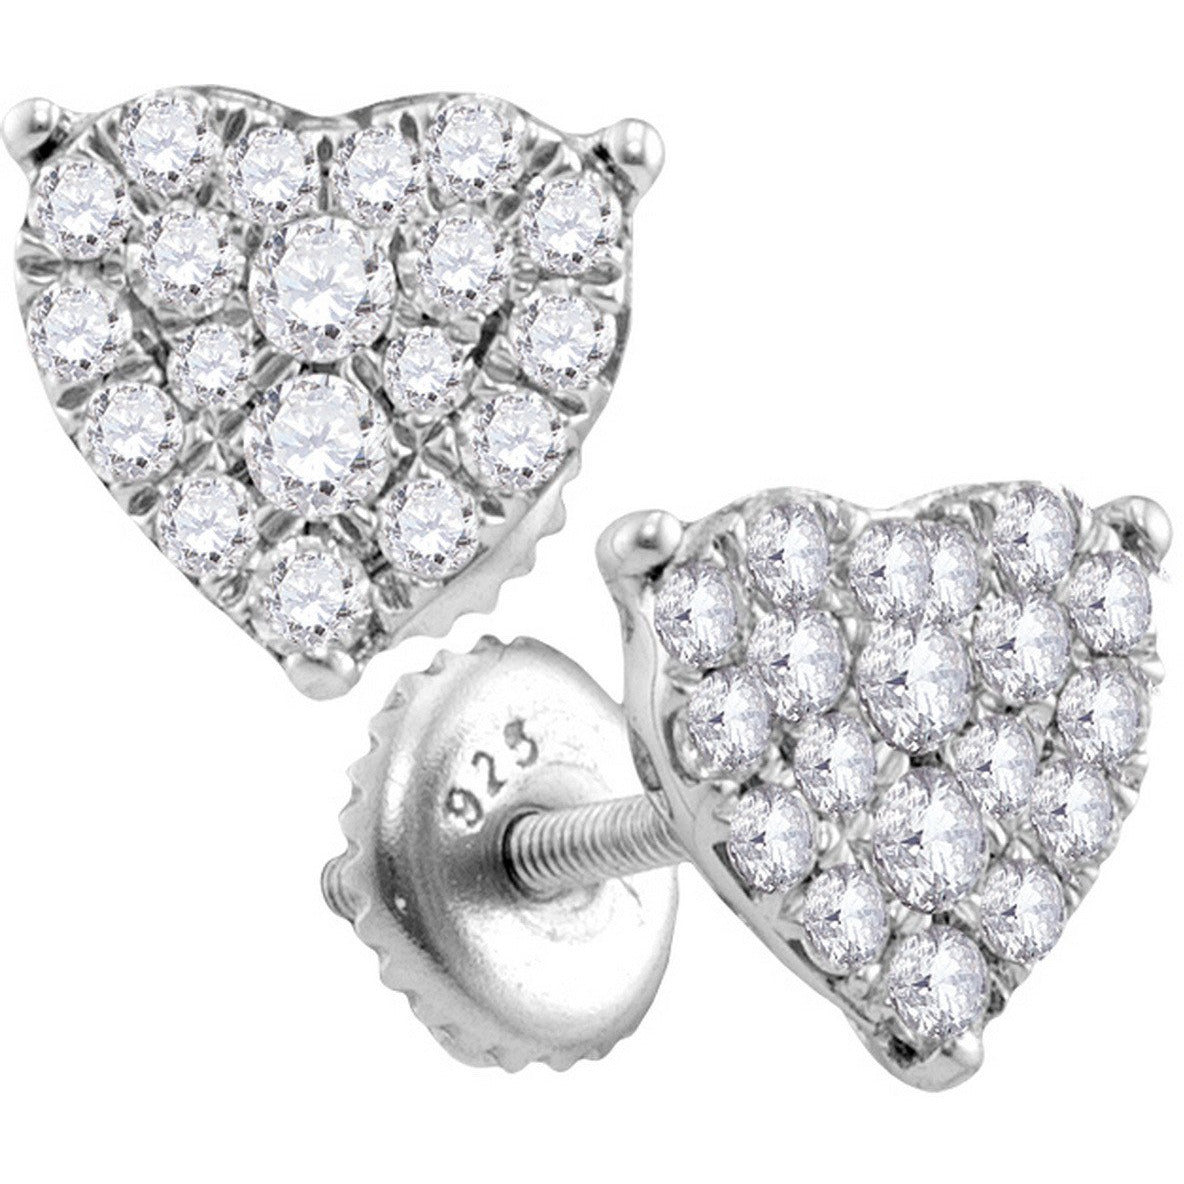 10kt White Gold Womens Round Diamond Heart Cluster Screwback Stud Earrings 3/4 Cttw 113336 - shirin-diamonds